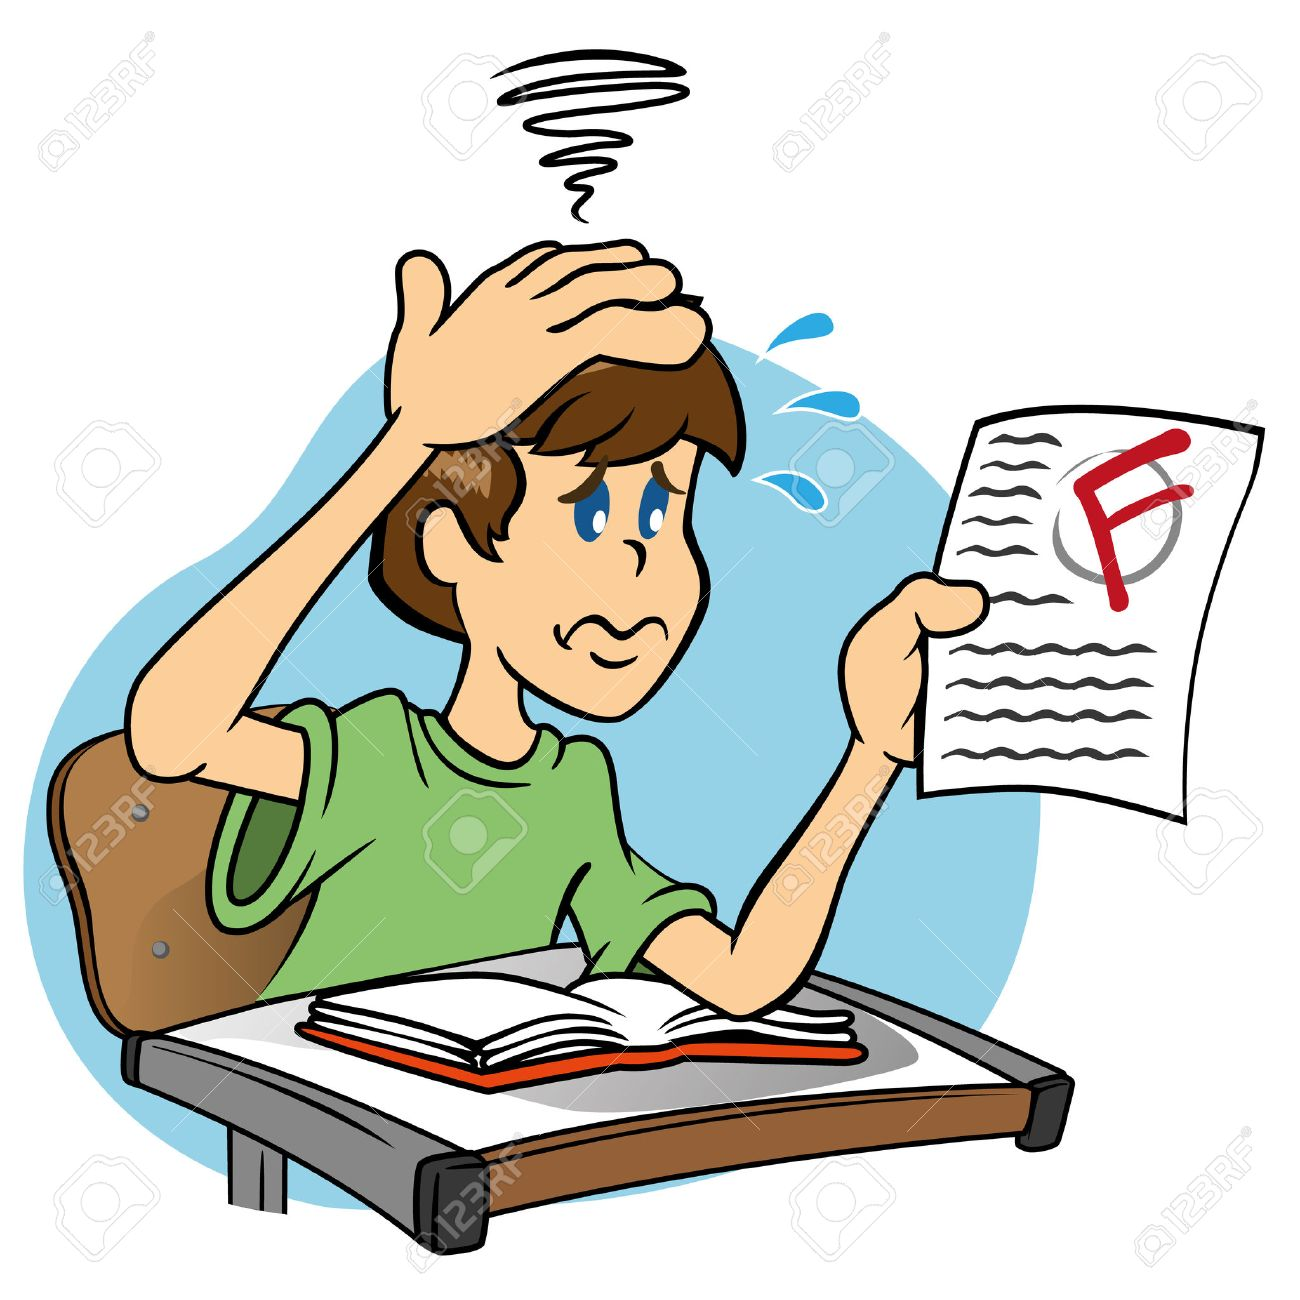 Worried Student Taking A Test